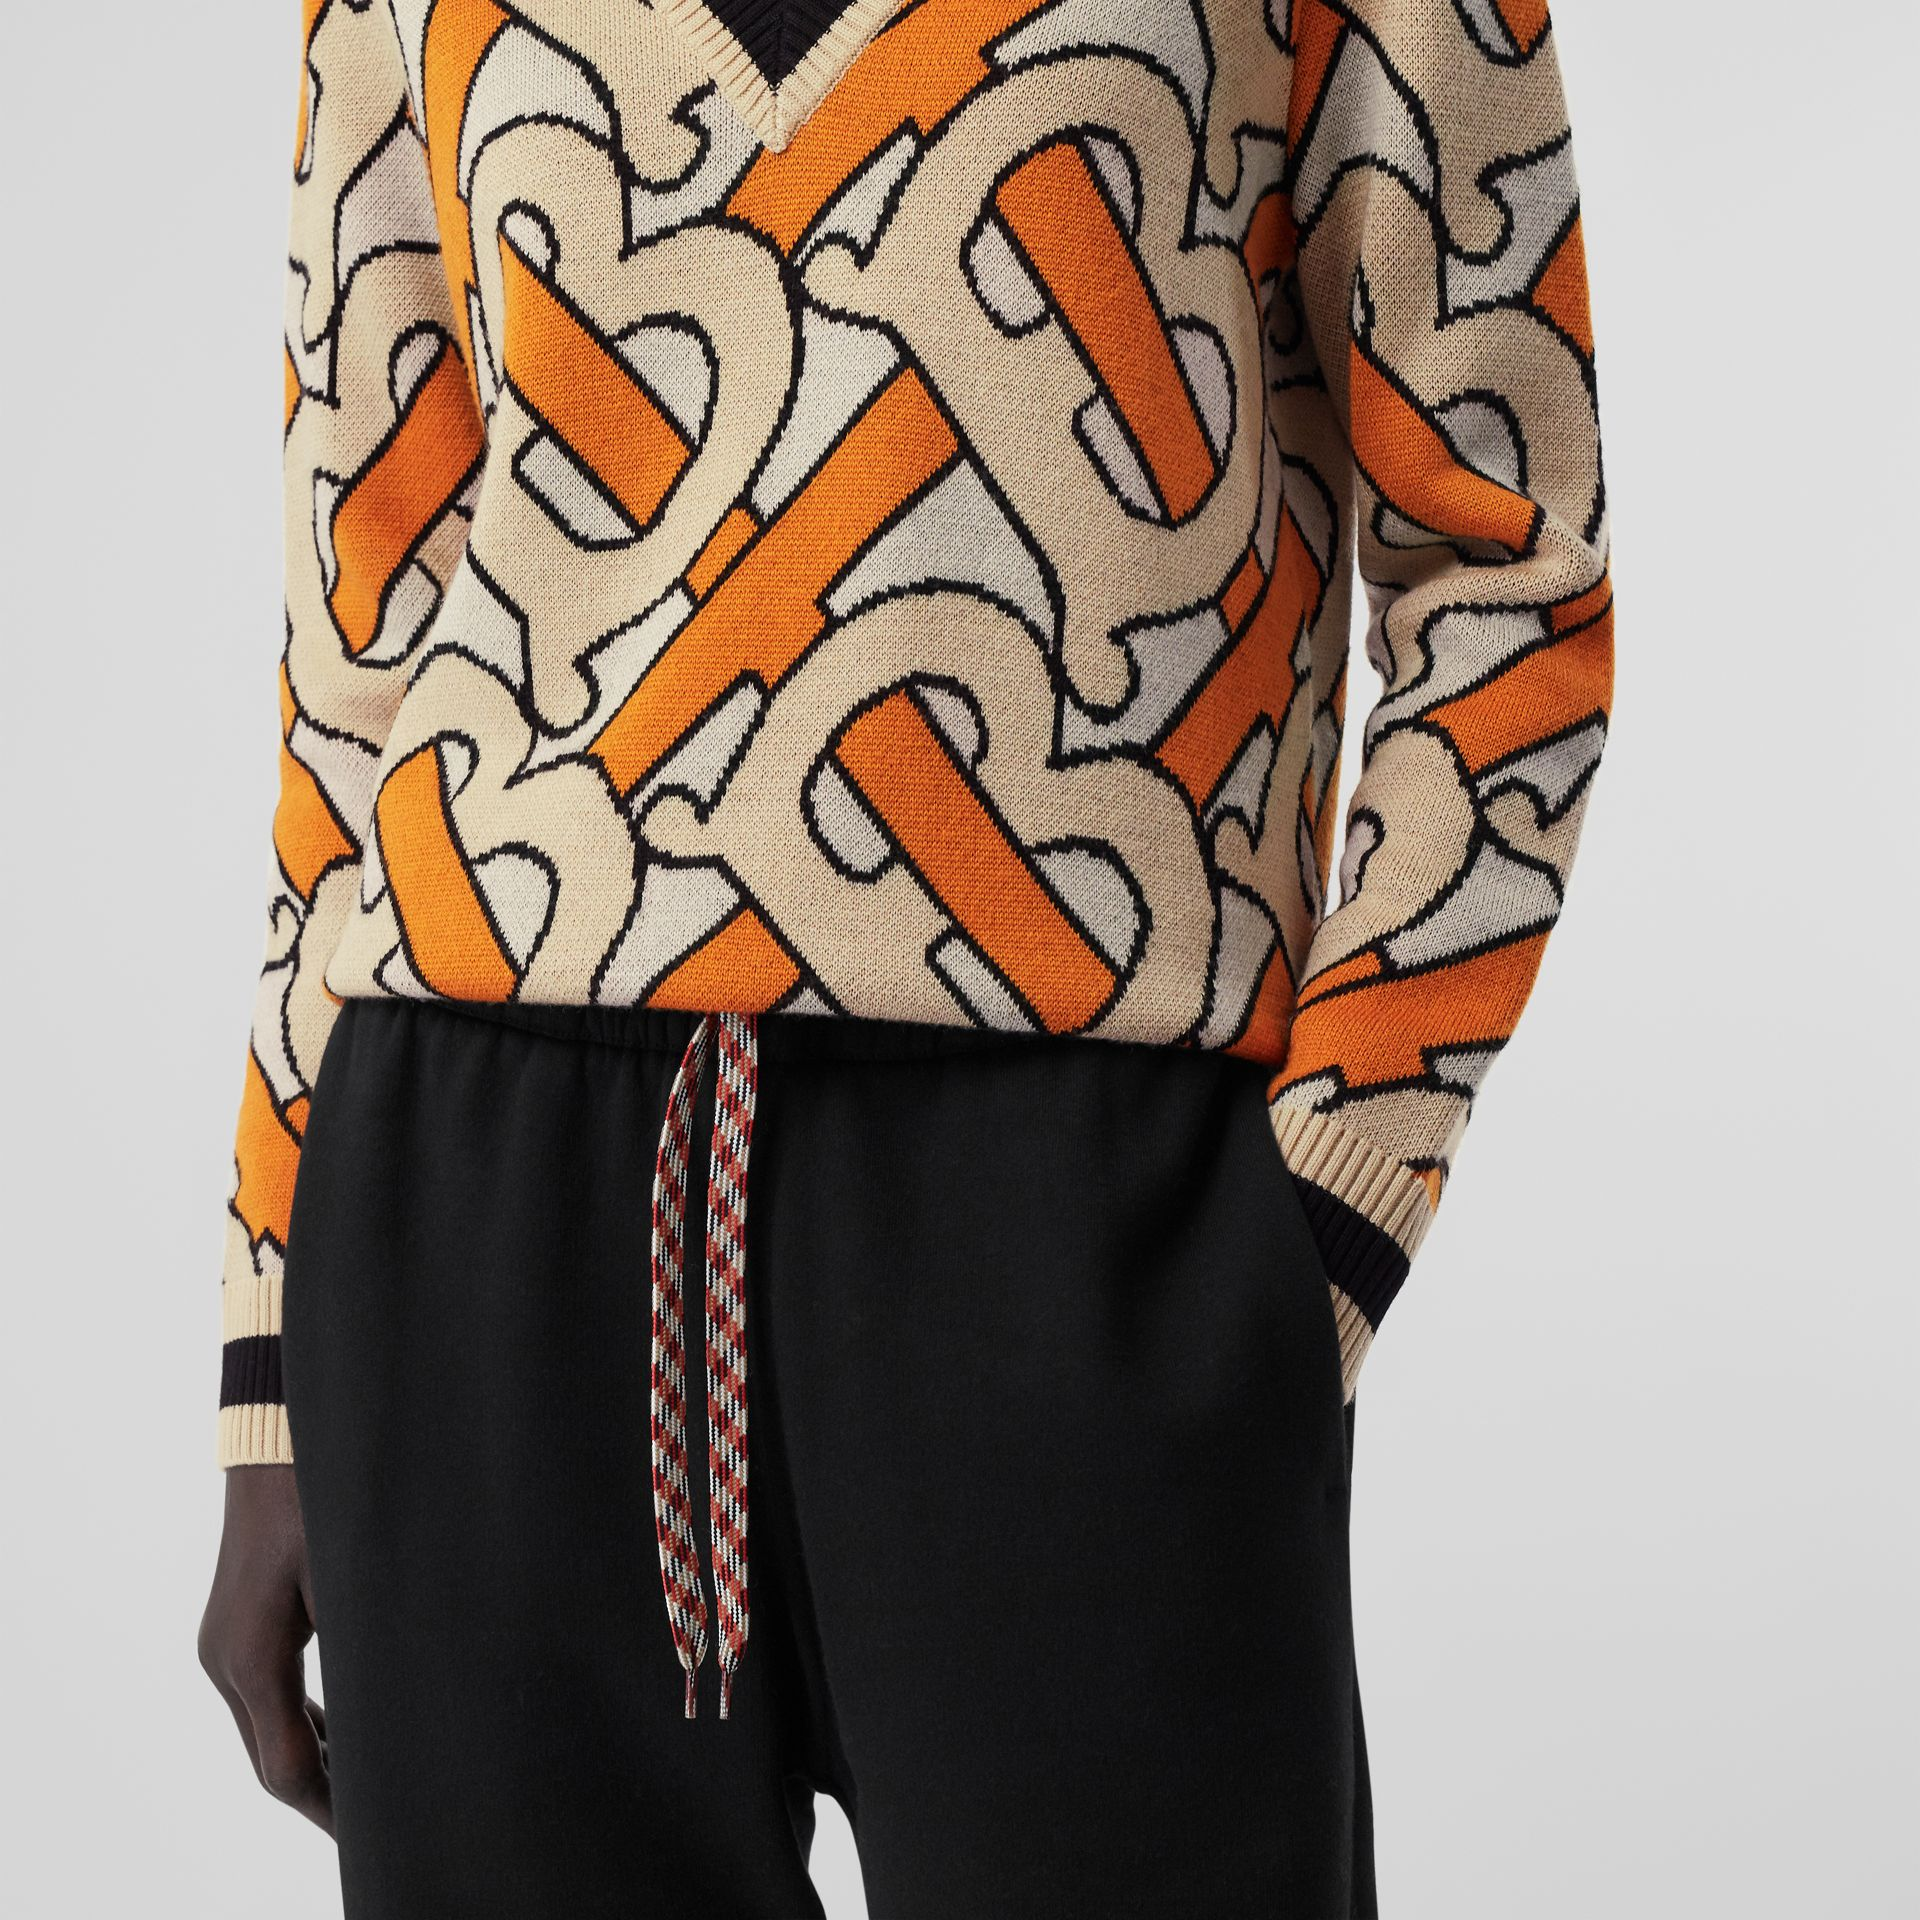 Monogram Intarsia Wool V-neck Sweater in Bright Orange - Women | Burberry - gallery image 4